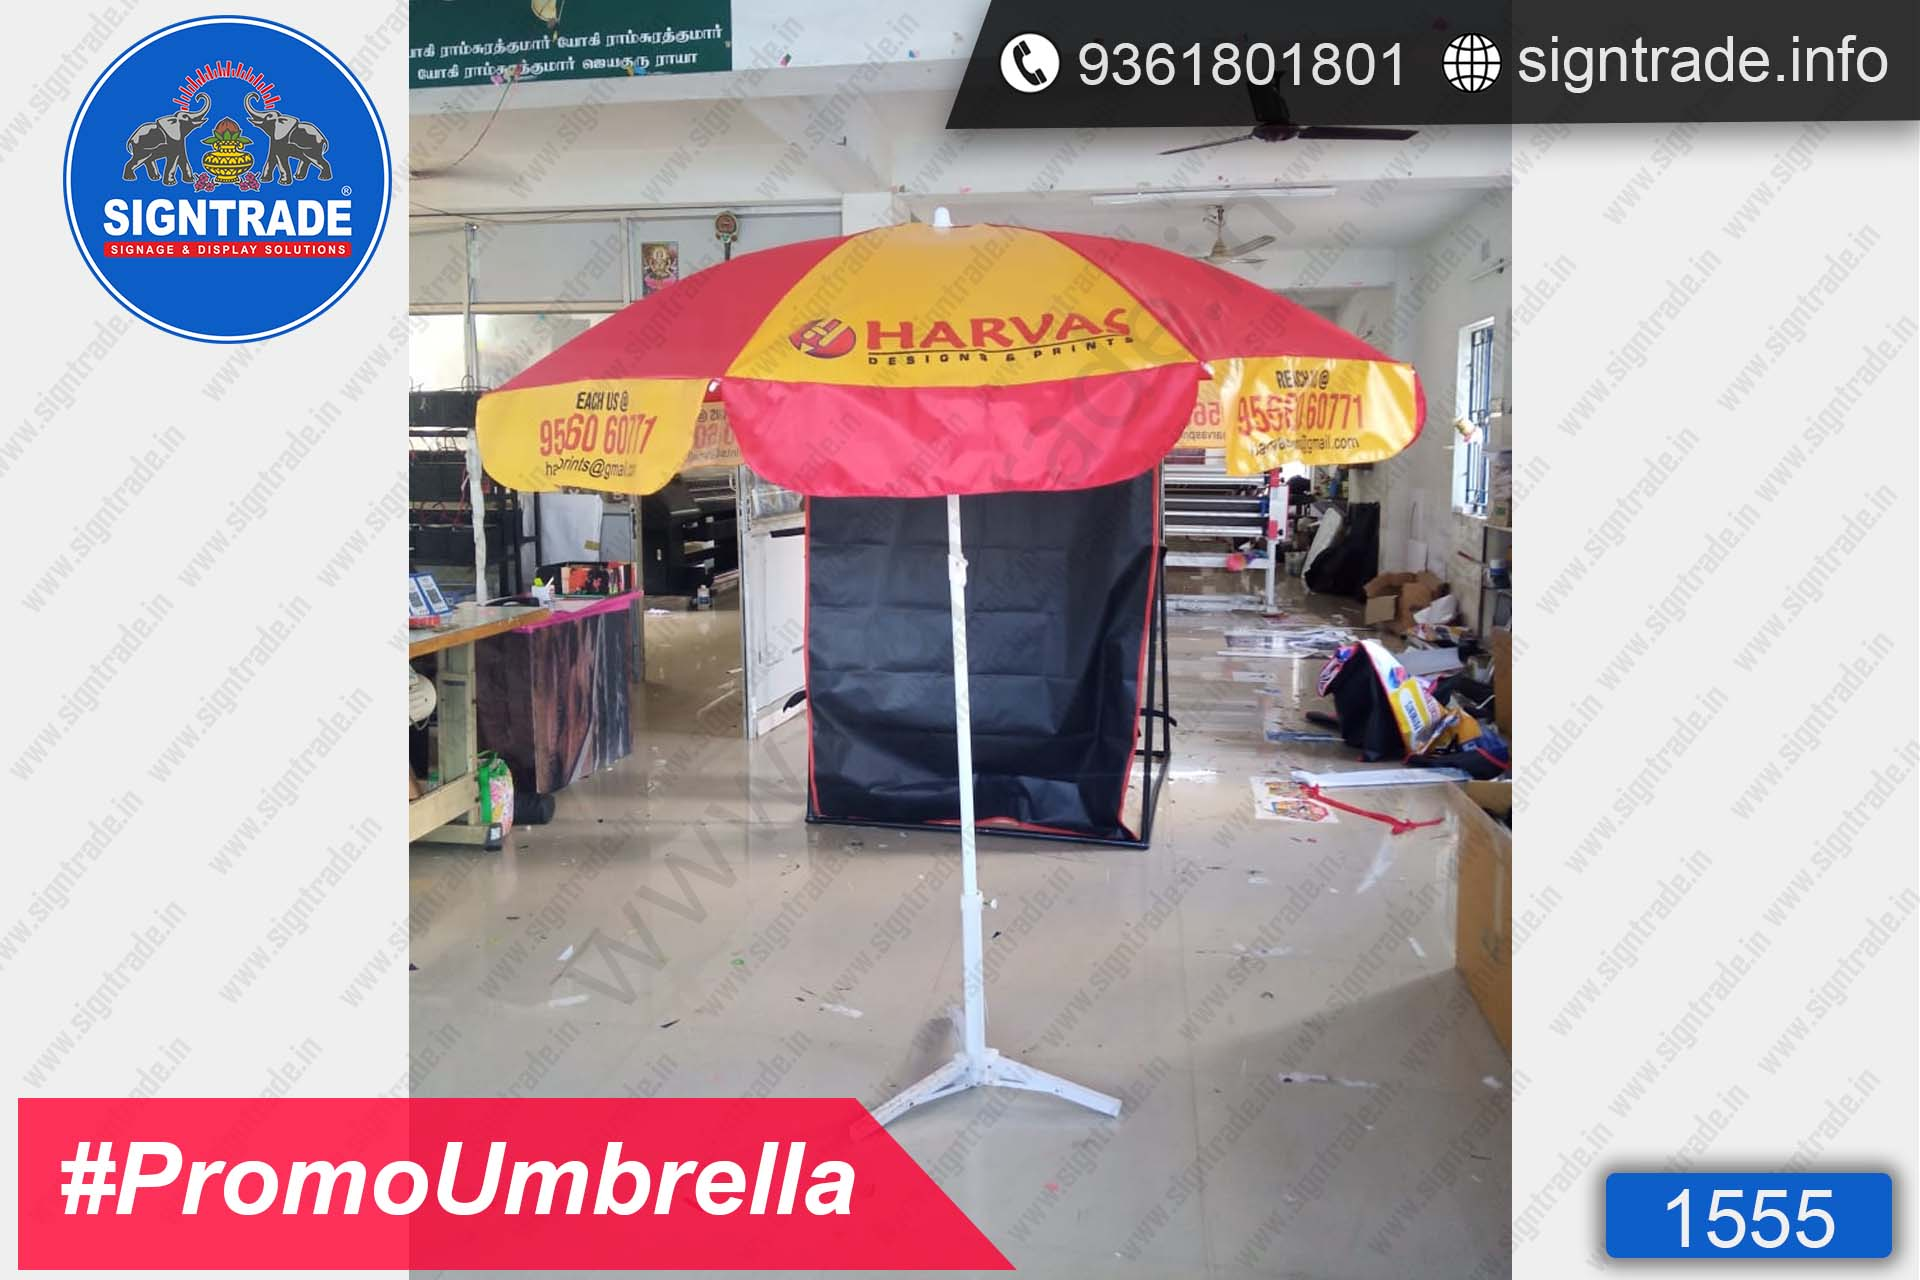 Harvas Designs & Prints - SIGNTRADE - Promotional Umbrella Manufactures in Chennai